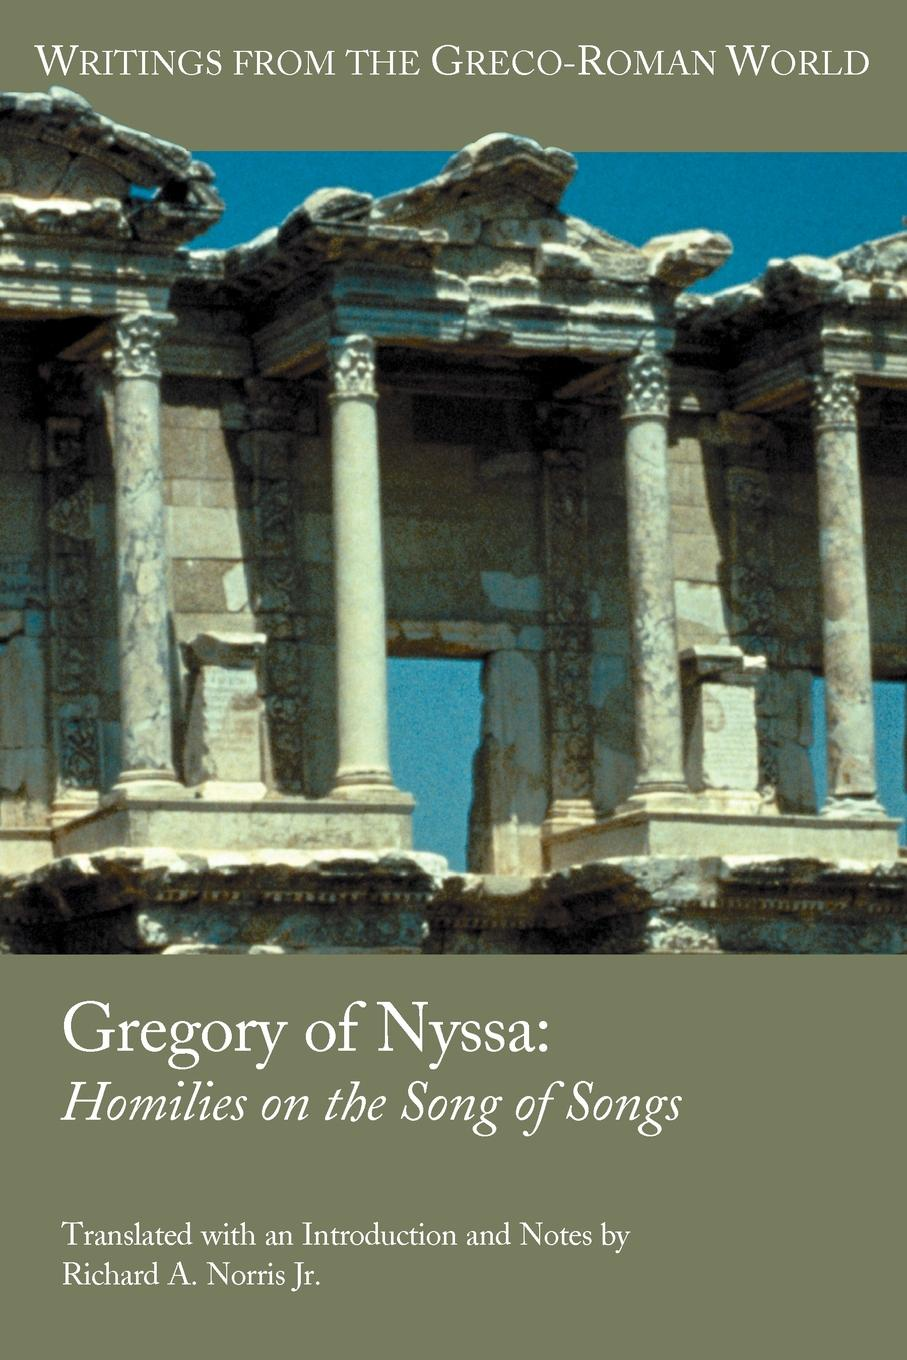 Gregory, Richard A. Jr. Norris Gregory of Nyssa. Homilies on the Song Songs